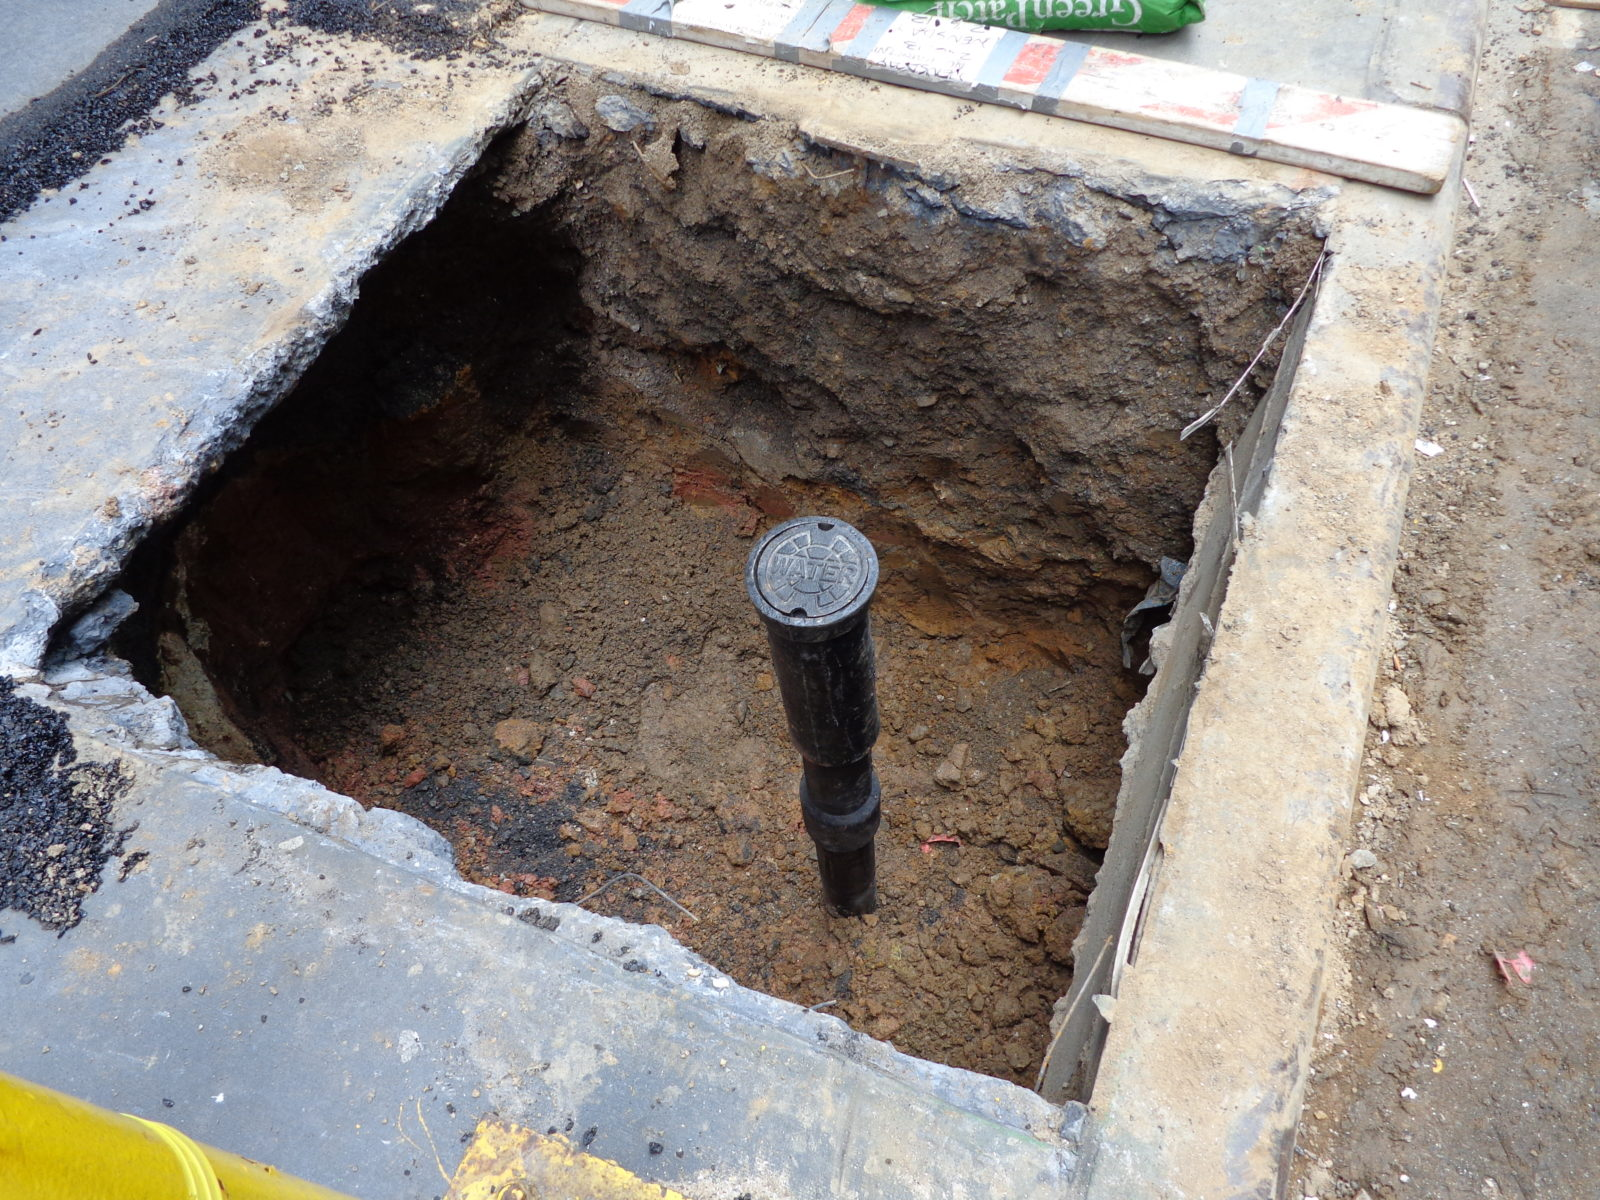 how to detect leak in underground water line